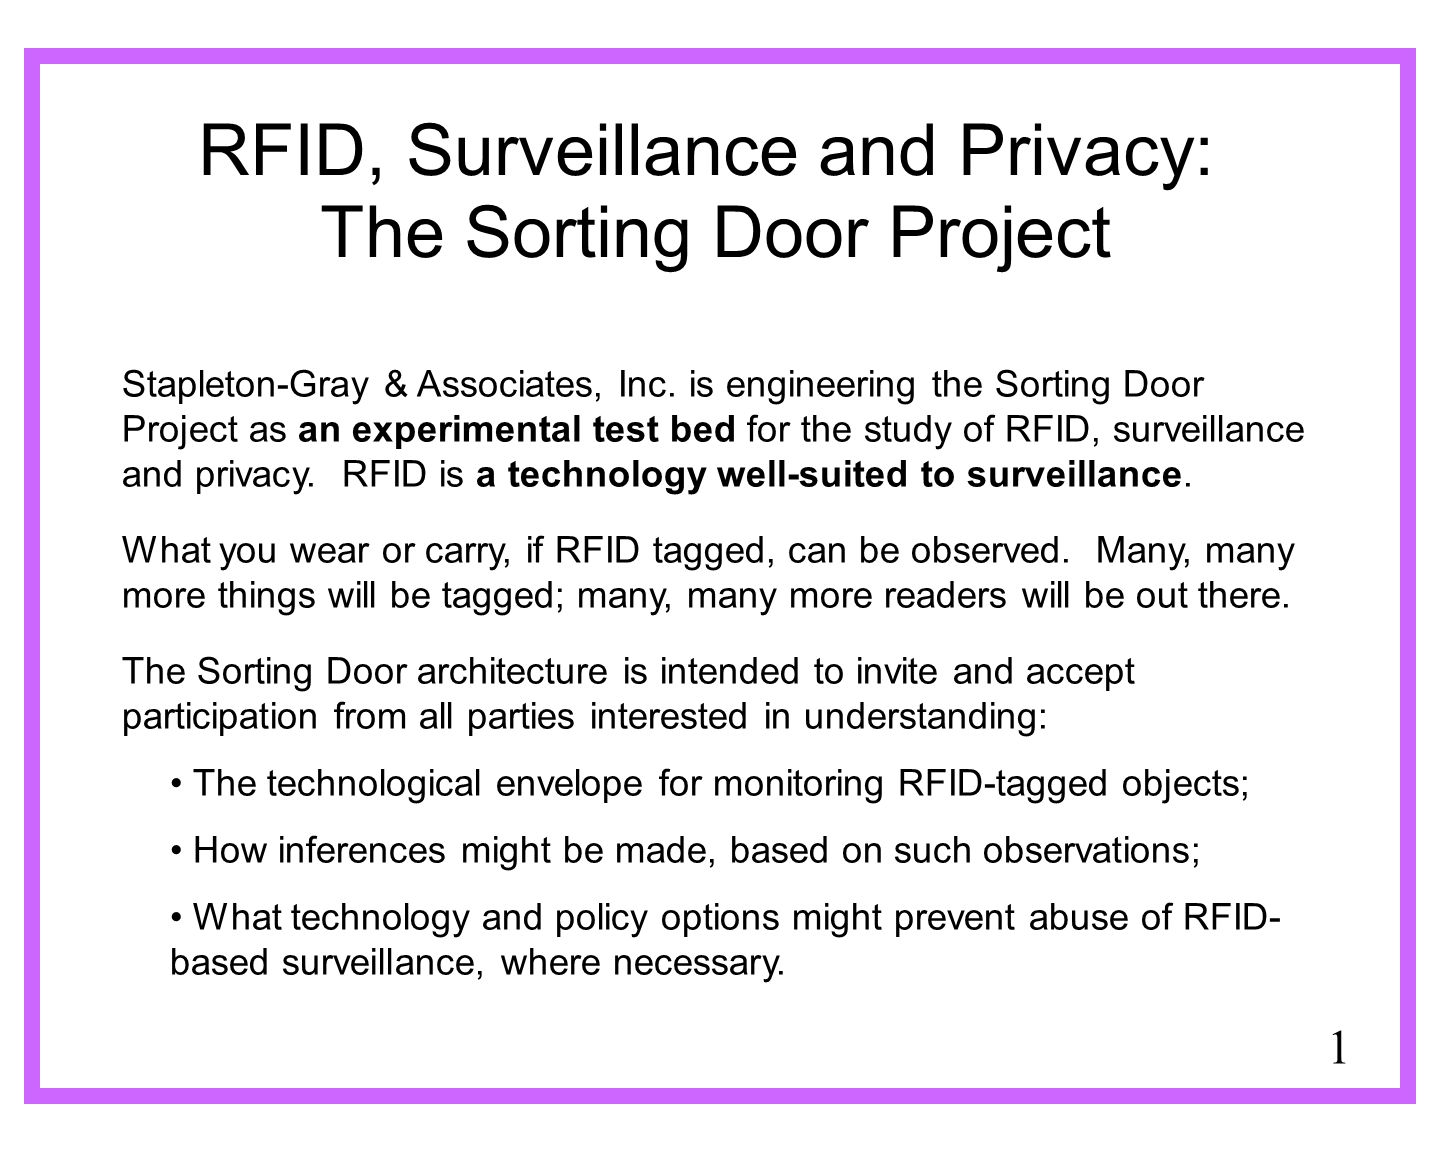 1 RFID, Surveillance and Privacy: The Sorting Door Project Stapleton-Gray & Associates, Inc. is engineering the Sorting Door Project as an experimenta